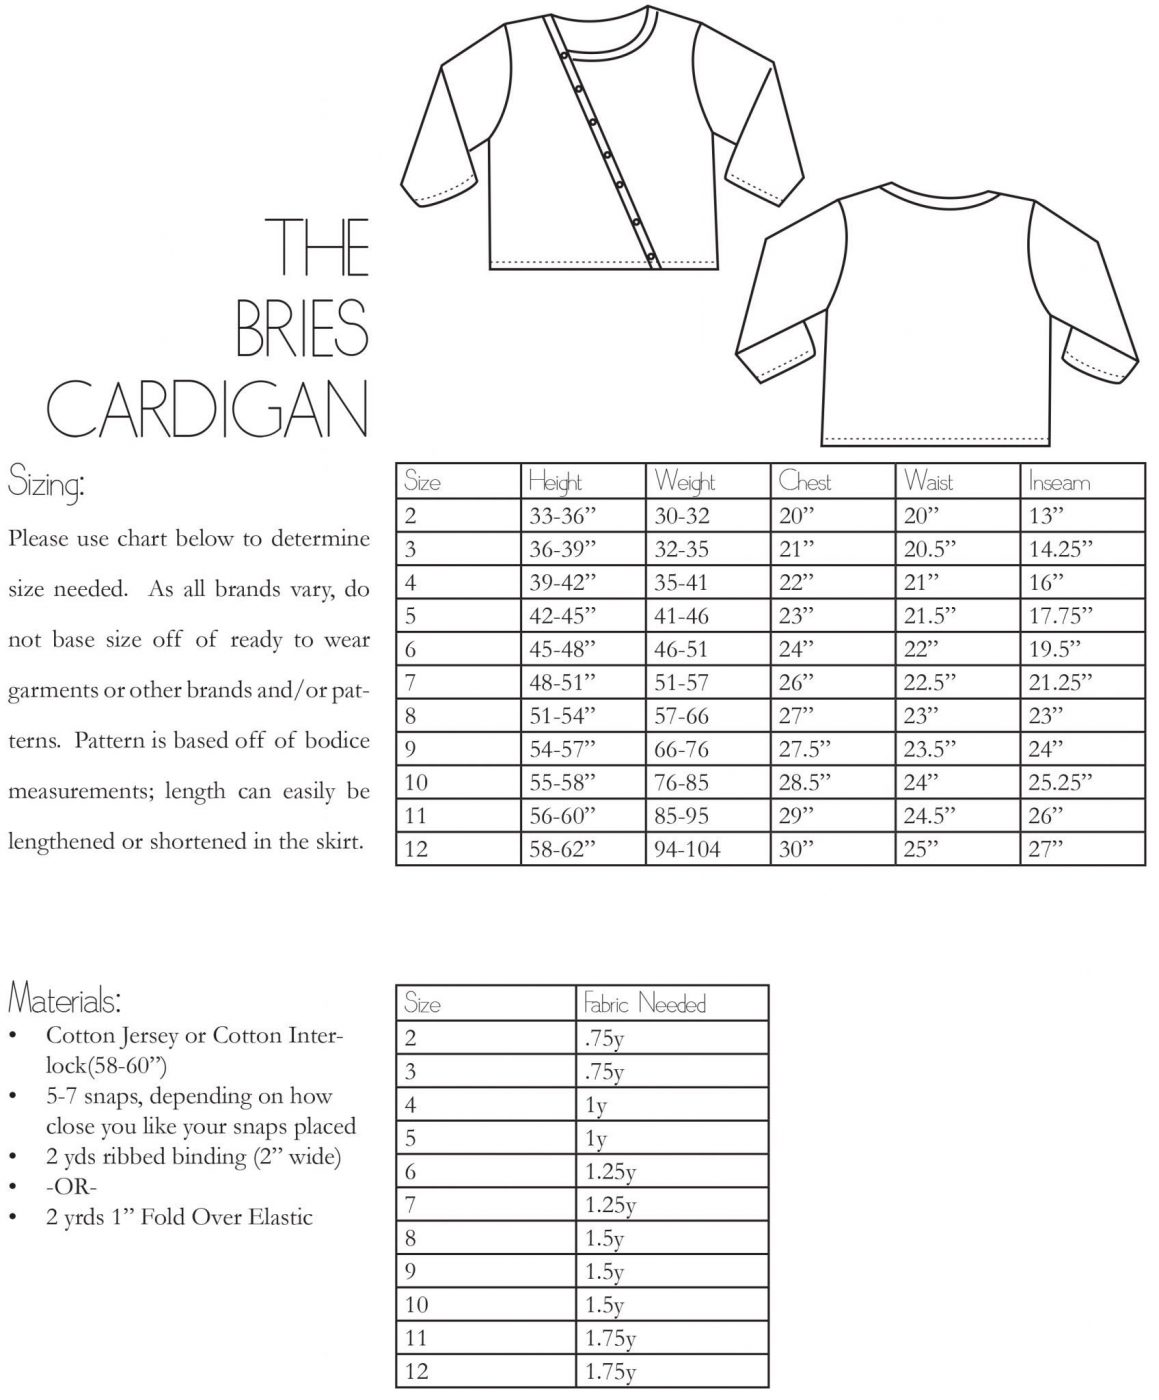 The Bries Cardigan Information